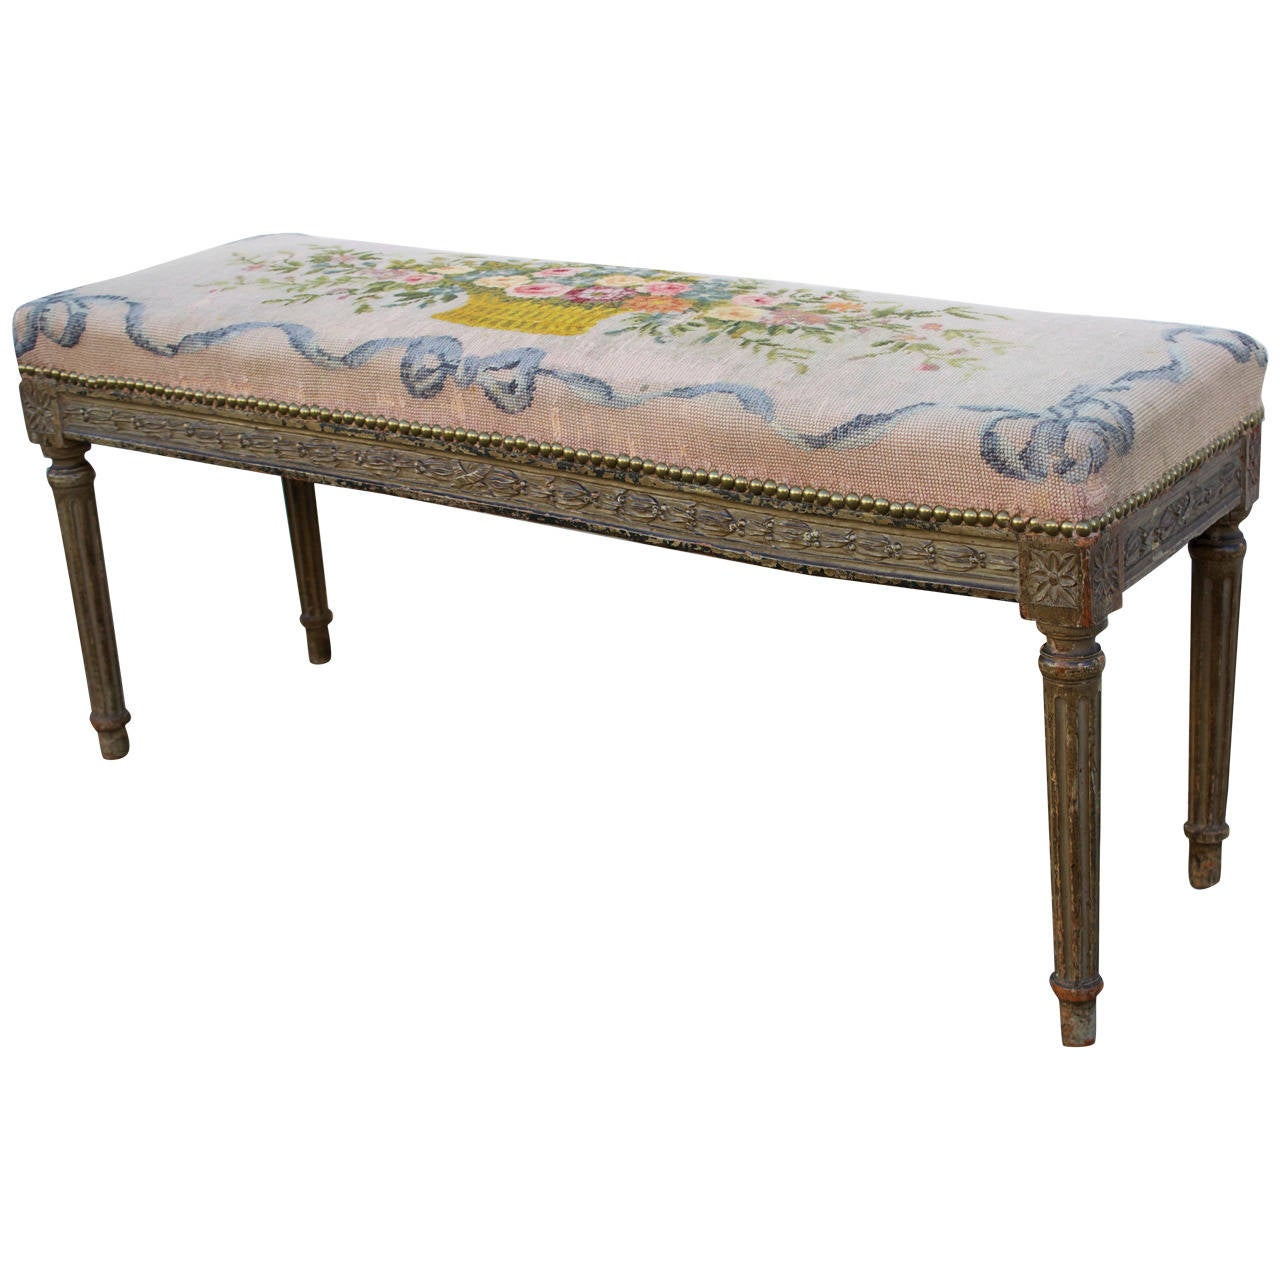 French Needlepoint Covered Louis Xvi Style Bench At 1stdibs